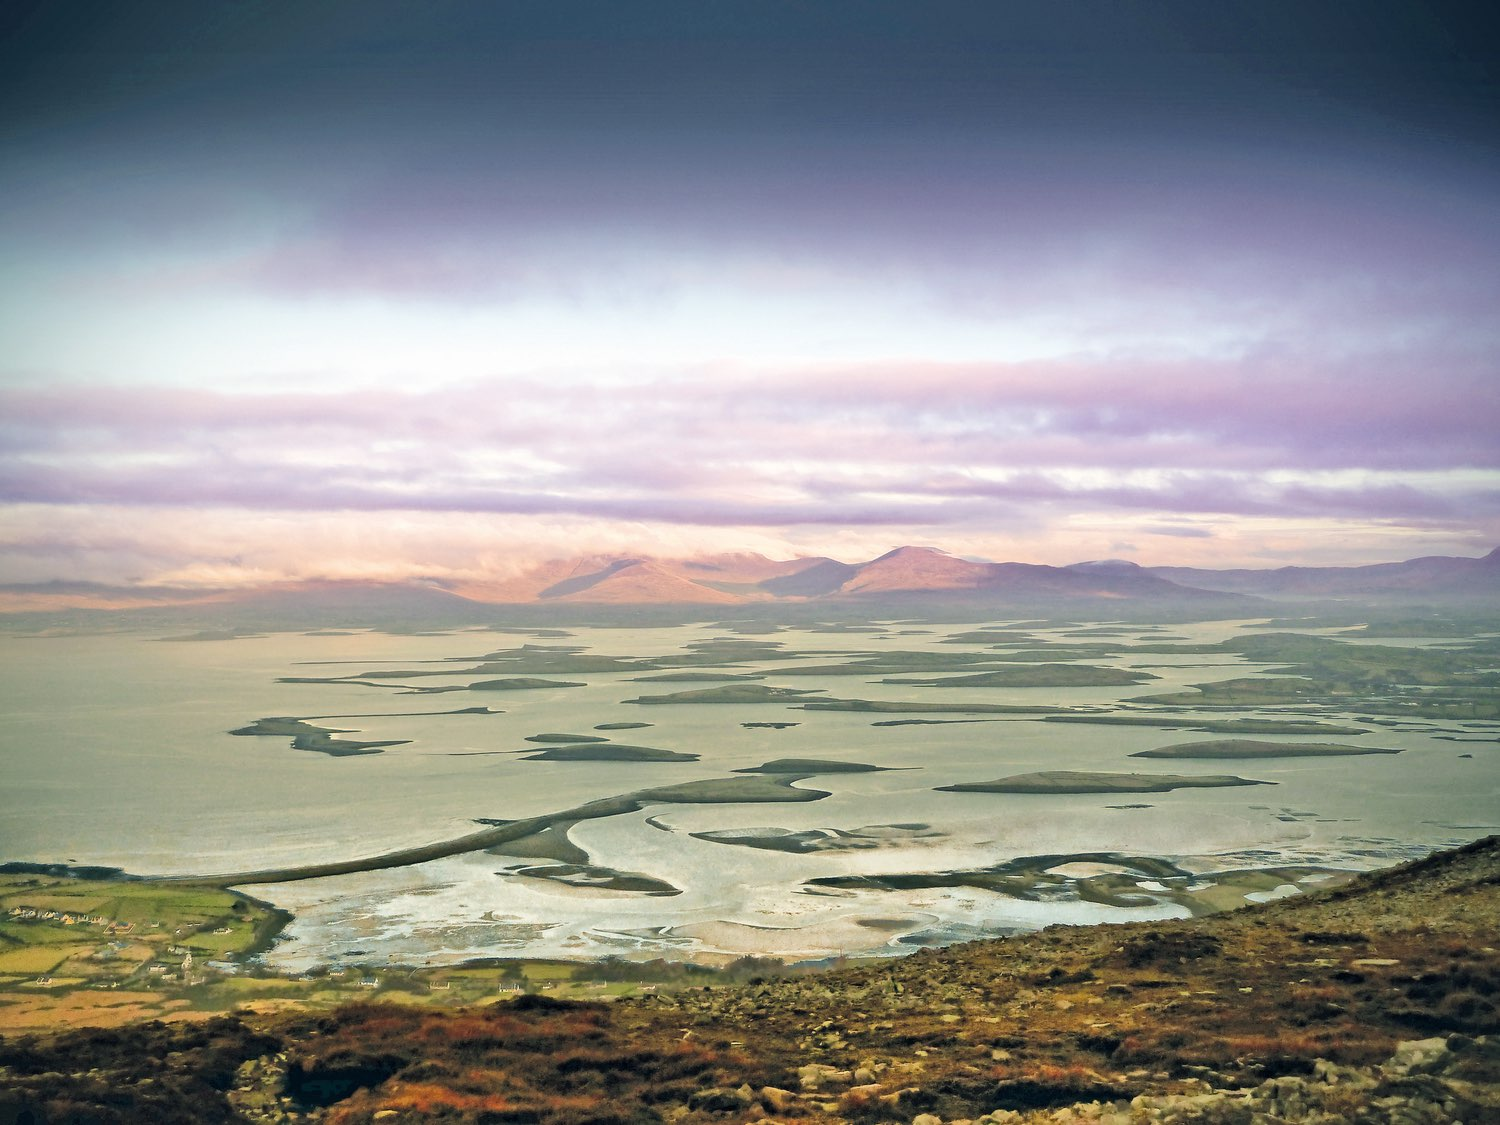 A view of Clew Bay from Croagh Patrick overlooks Dorinish Island (which once belonged to John Lennon), the village of Murrisk, and Bertra Beach.